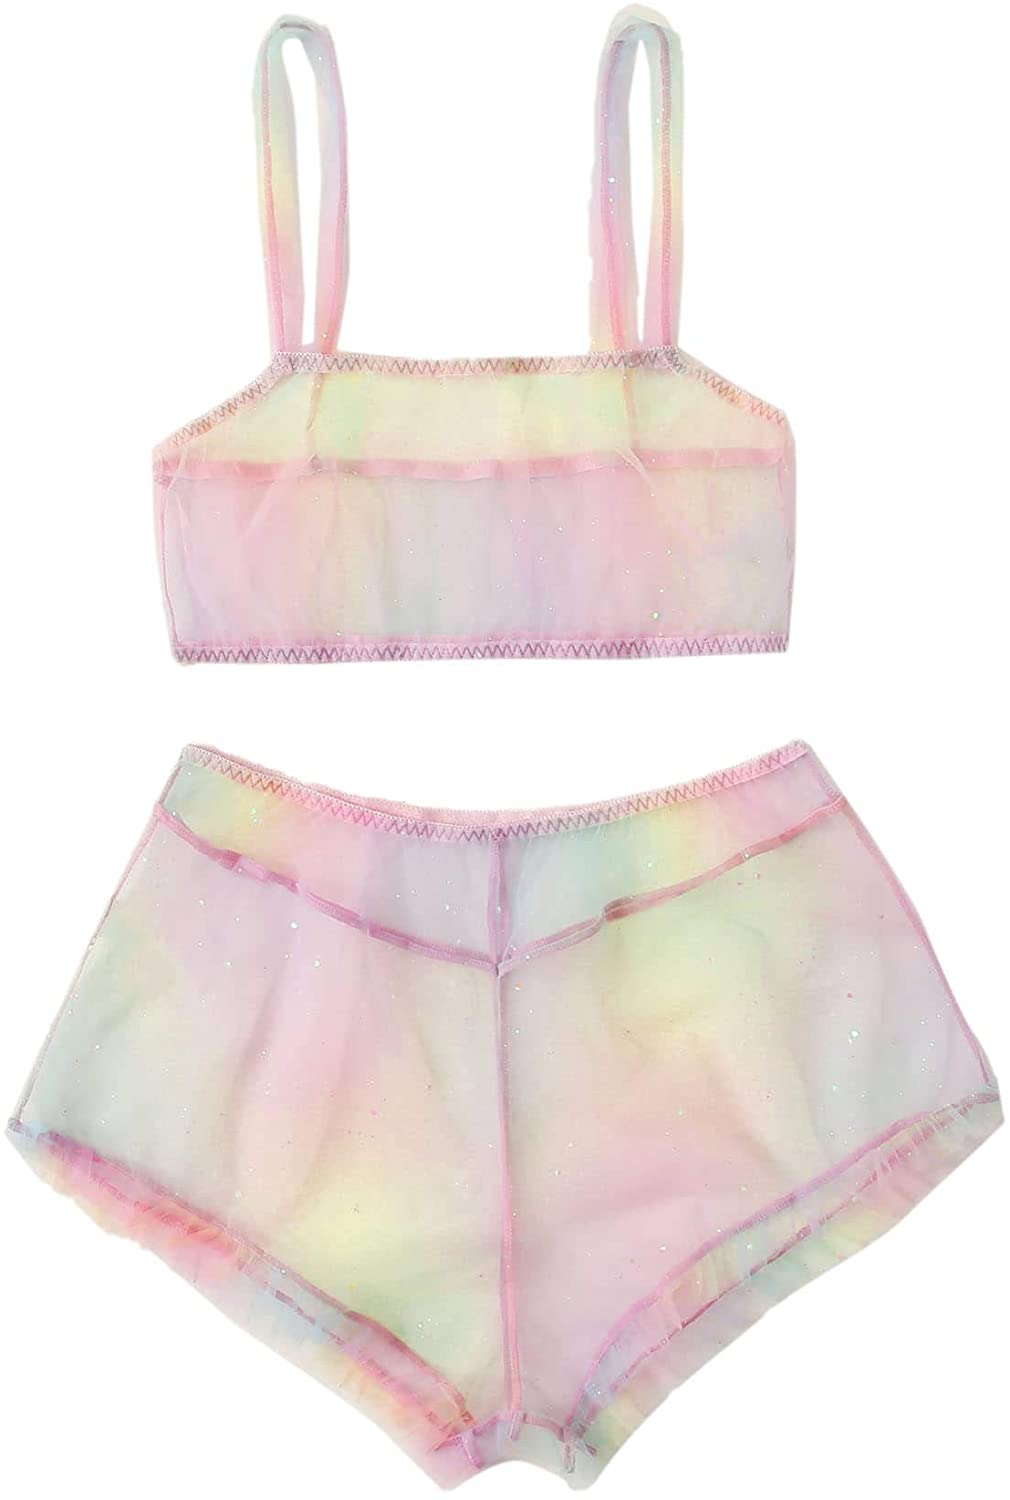 SOLY HUX Women's Sexy Mesh Sheer Cami Top and Shorts 2 Piece Lingerie Set